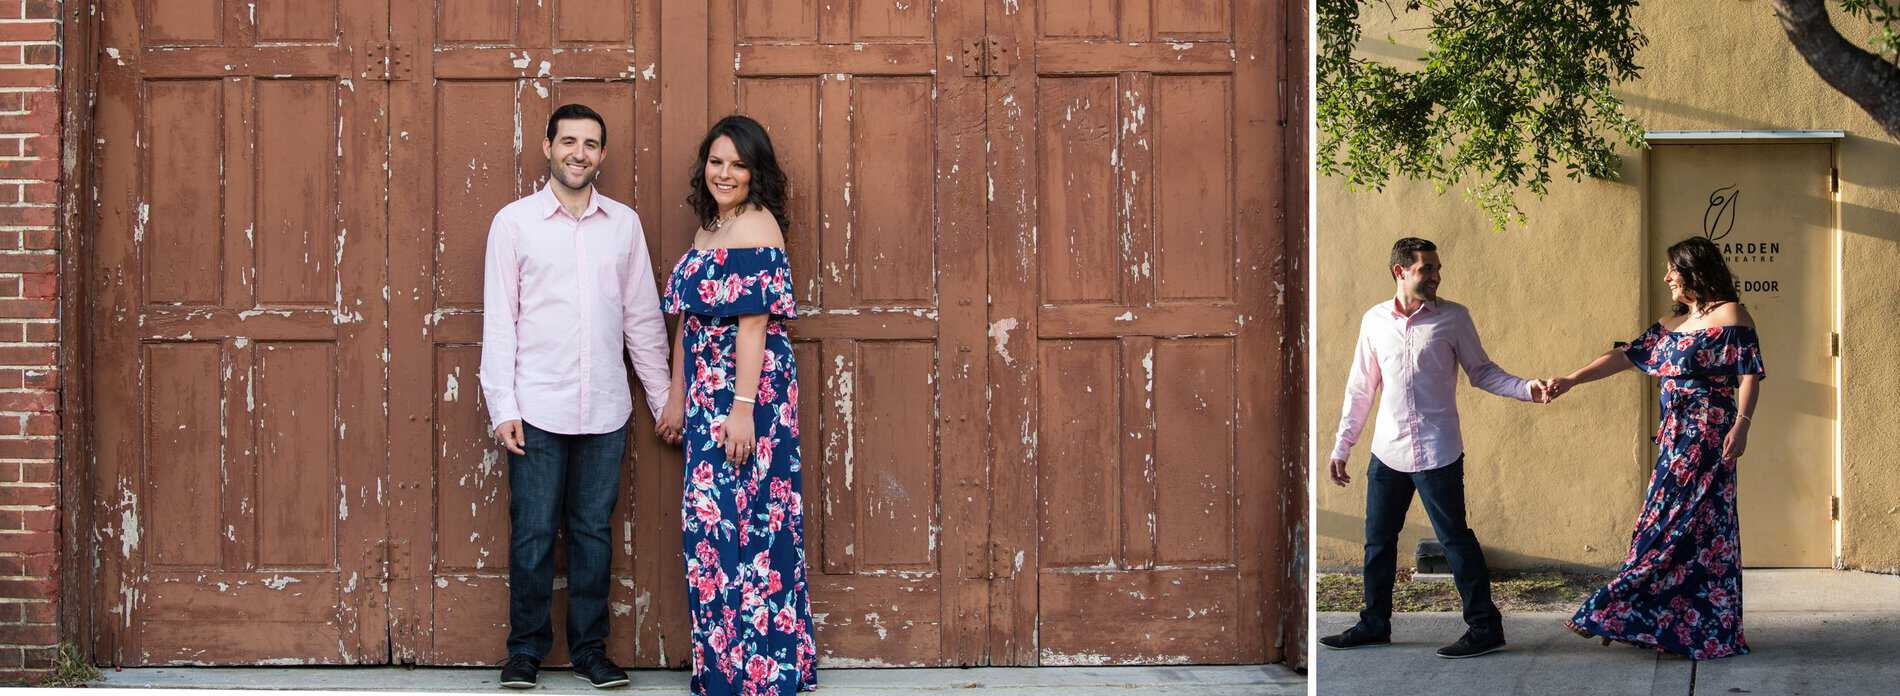 Couple enjoy by the Garden Theatre in Winter Garden during their engagement photo session.